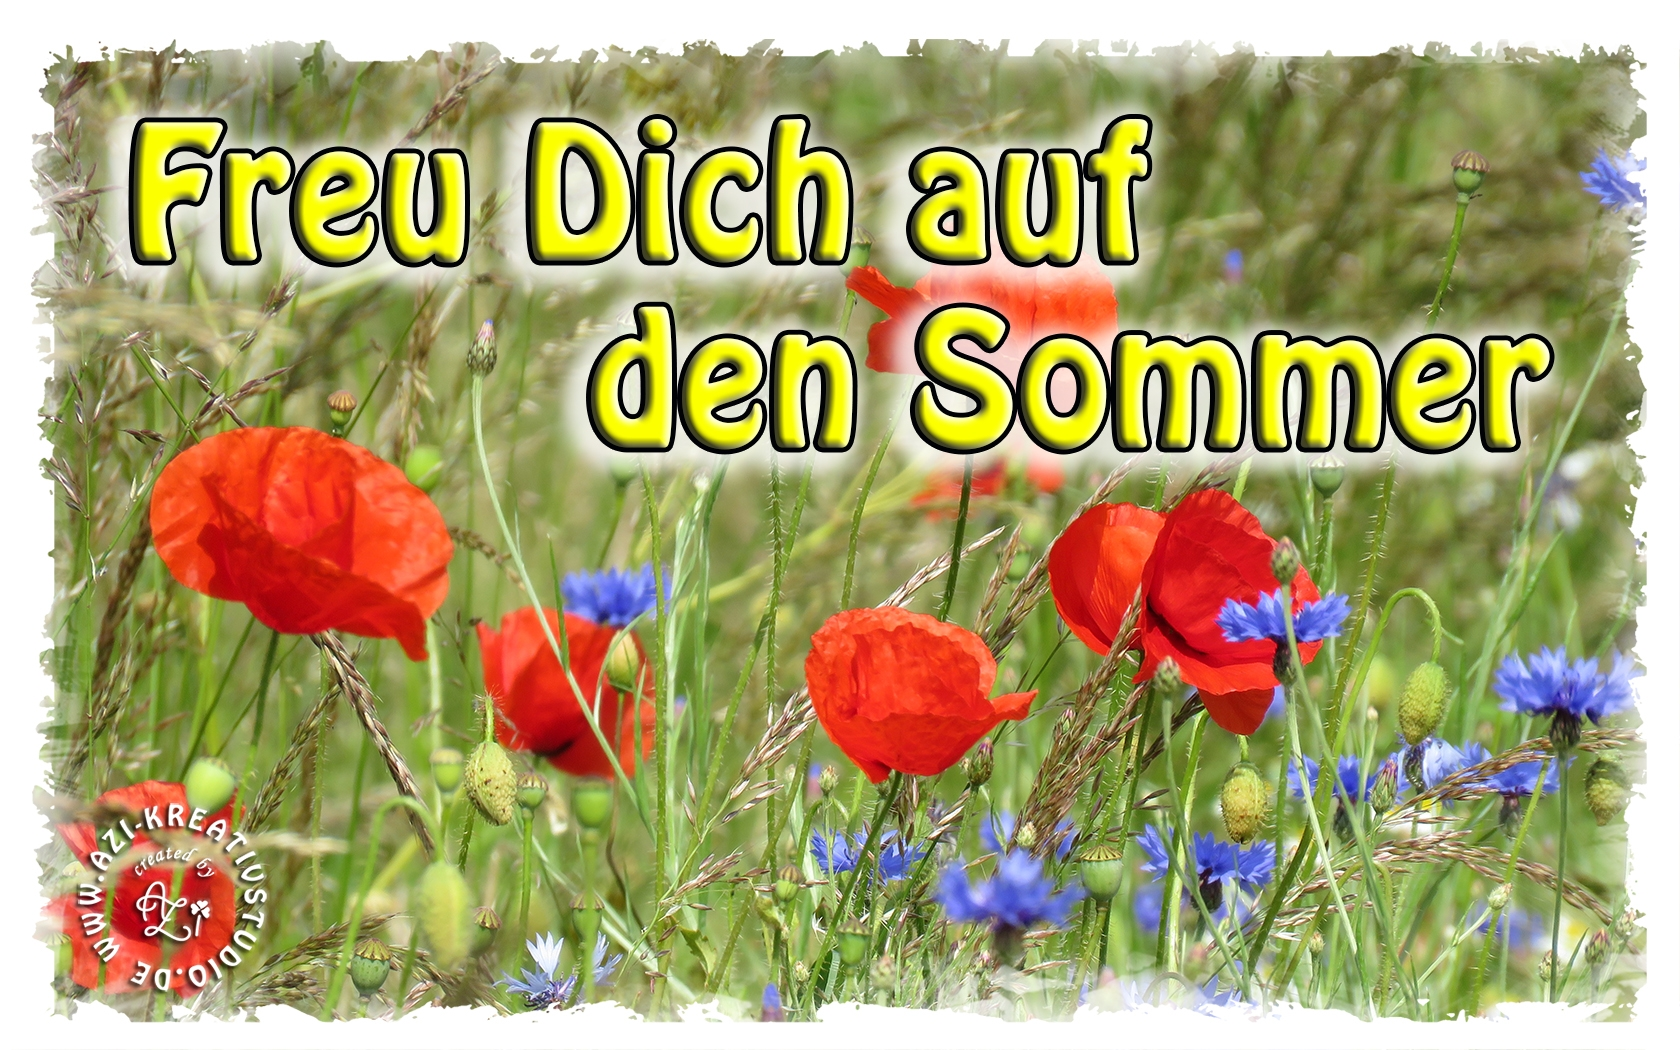 You are currently viewing Freu Dich auf den Sommer